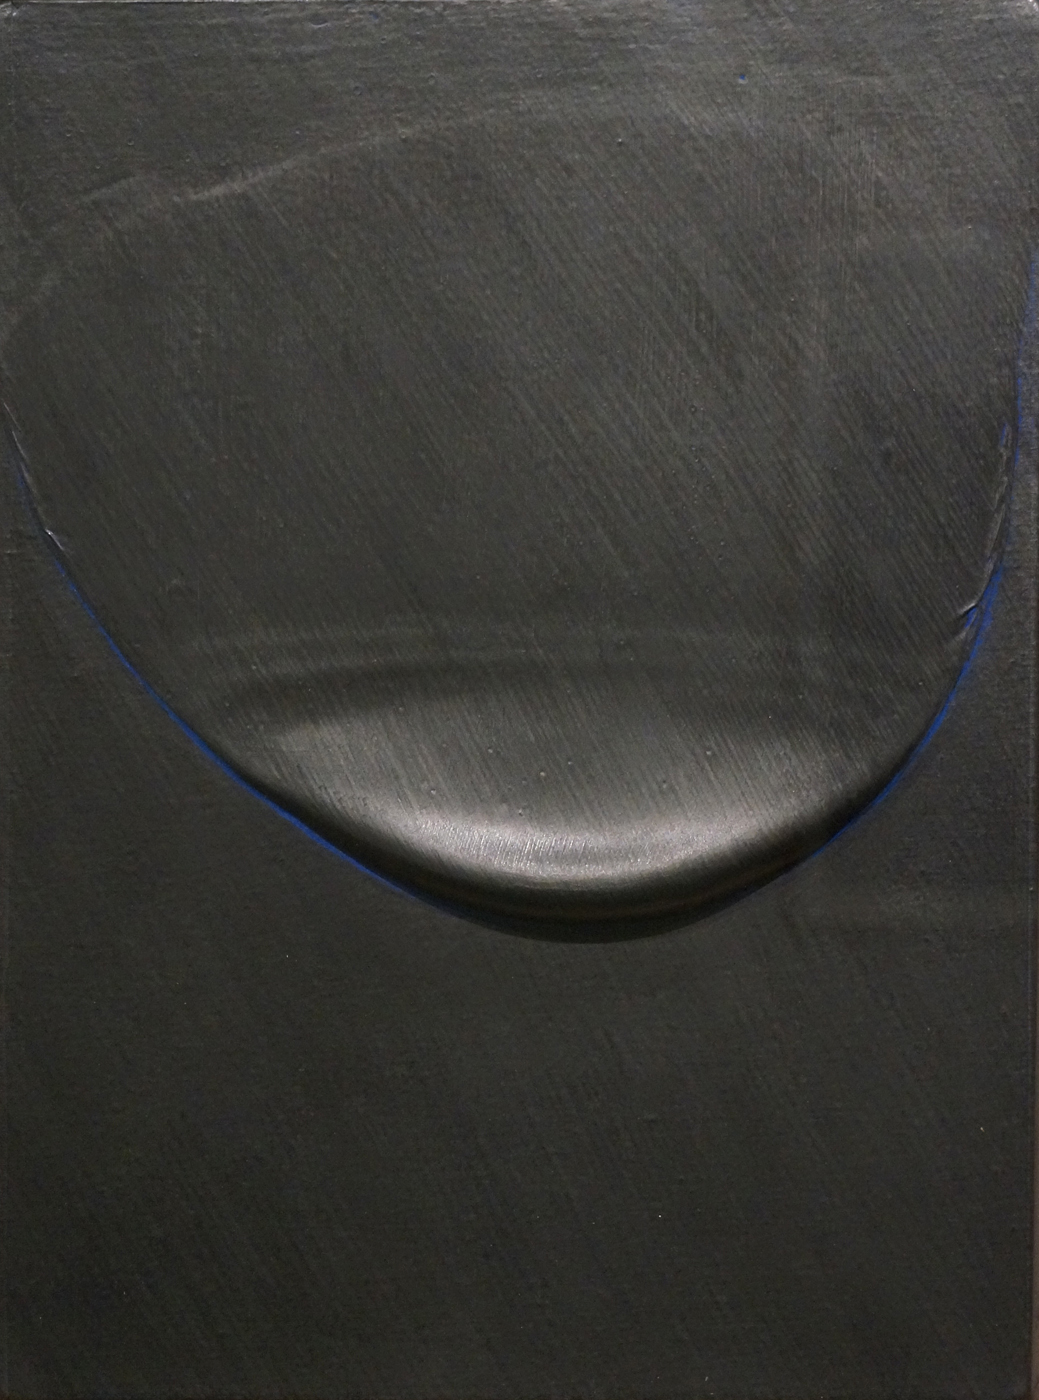 Takesada Matsutani《WAVE90-4》 Vinyl adhesive, graphite pencil, acrylic and japanease paper on canvas 1990  Courtesy of Yoshiaki Inoue Gallery